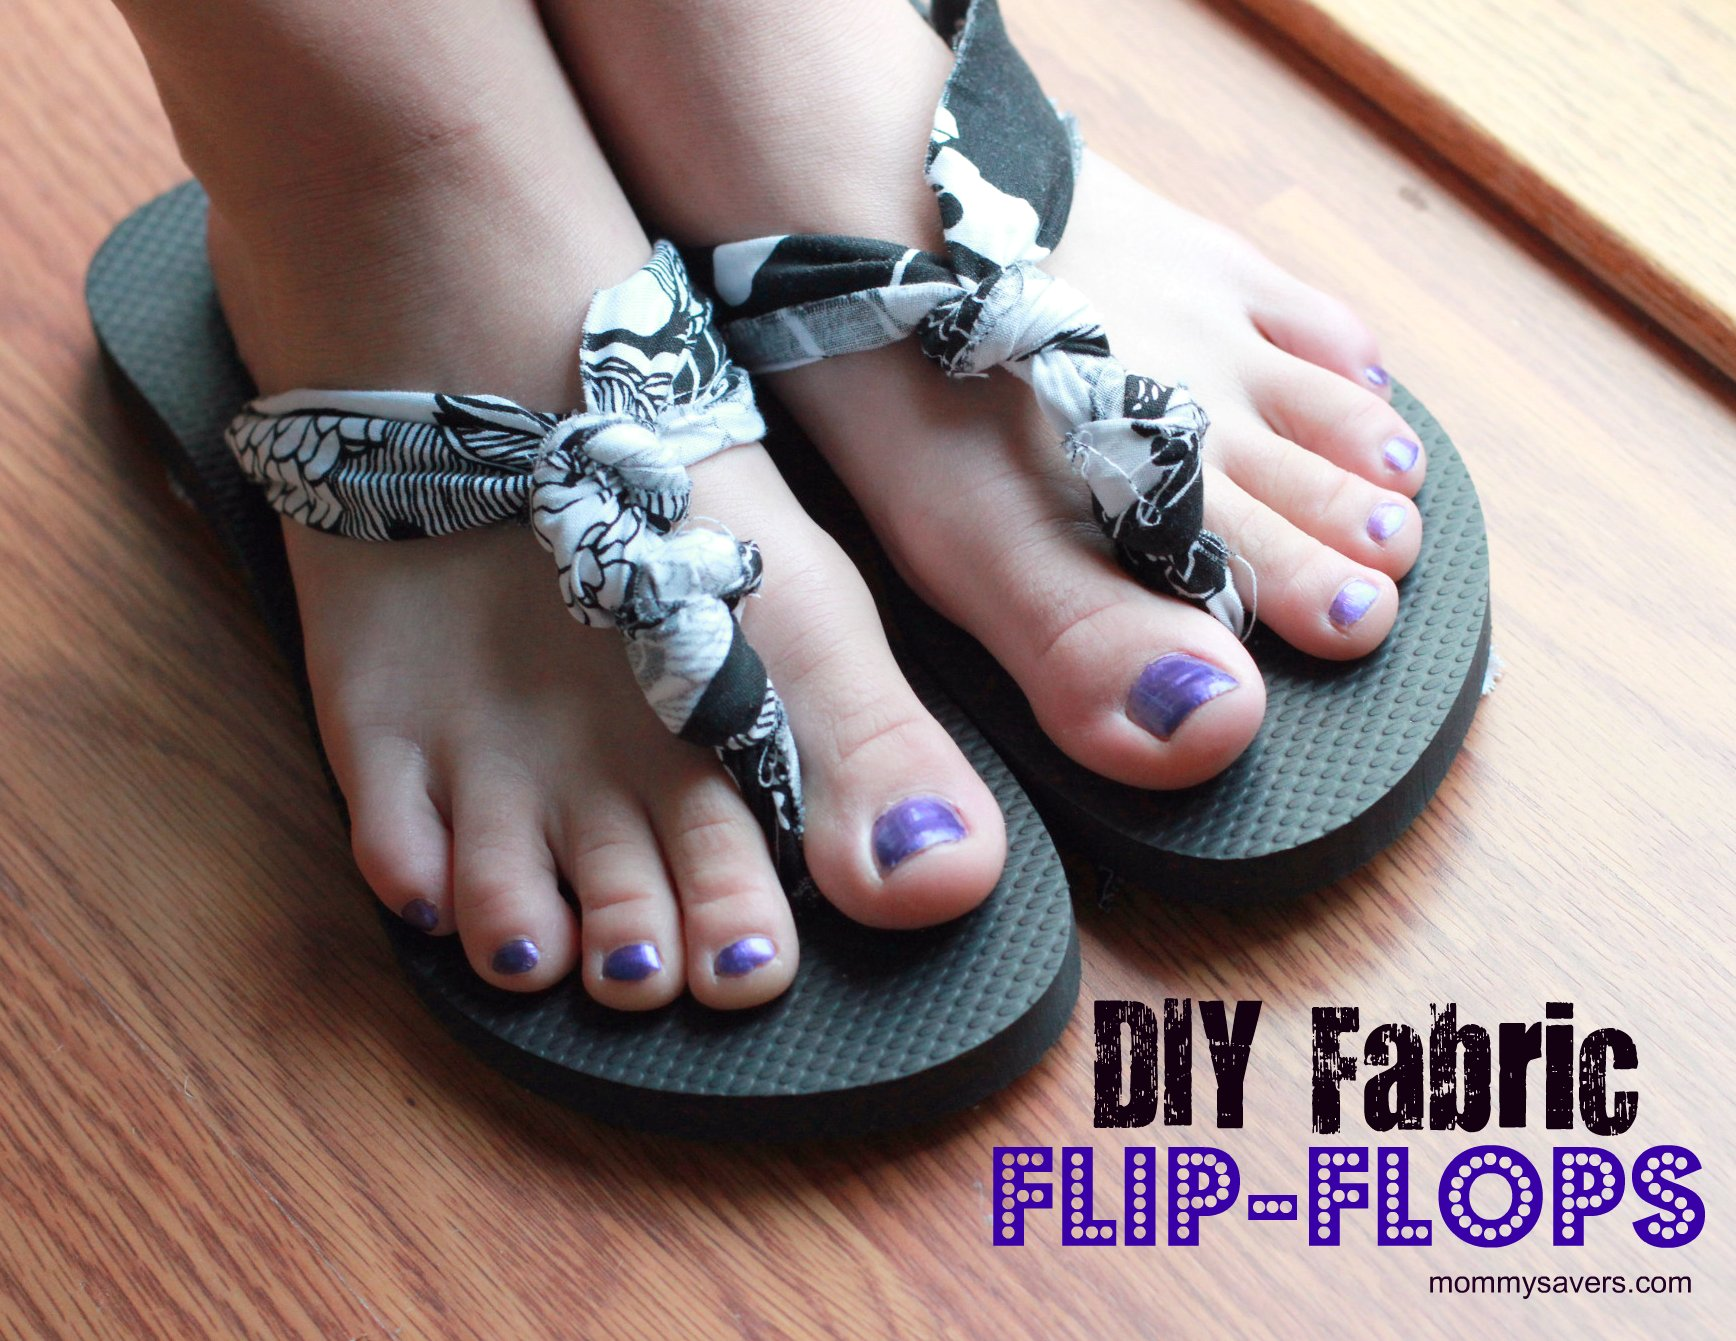 33d93ded7 DIY Fabric Flip-Flop Project Cost  Old Navy Flip-Flops 2  5 ( 2.50 pair)  1 4 Yard Fabric  1.00